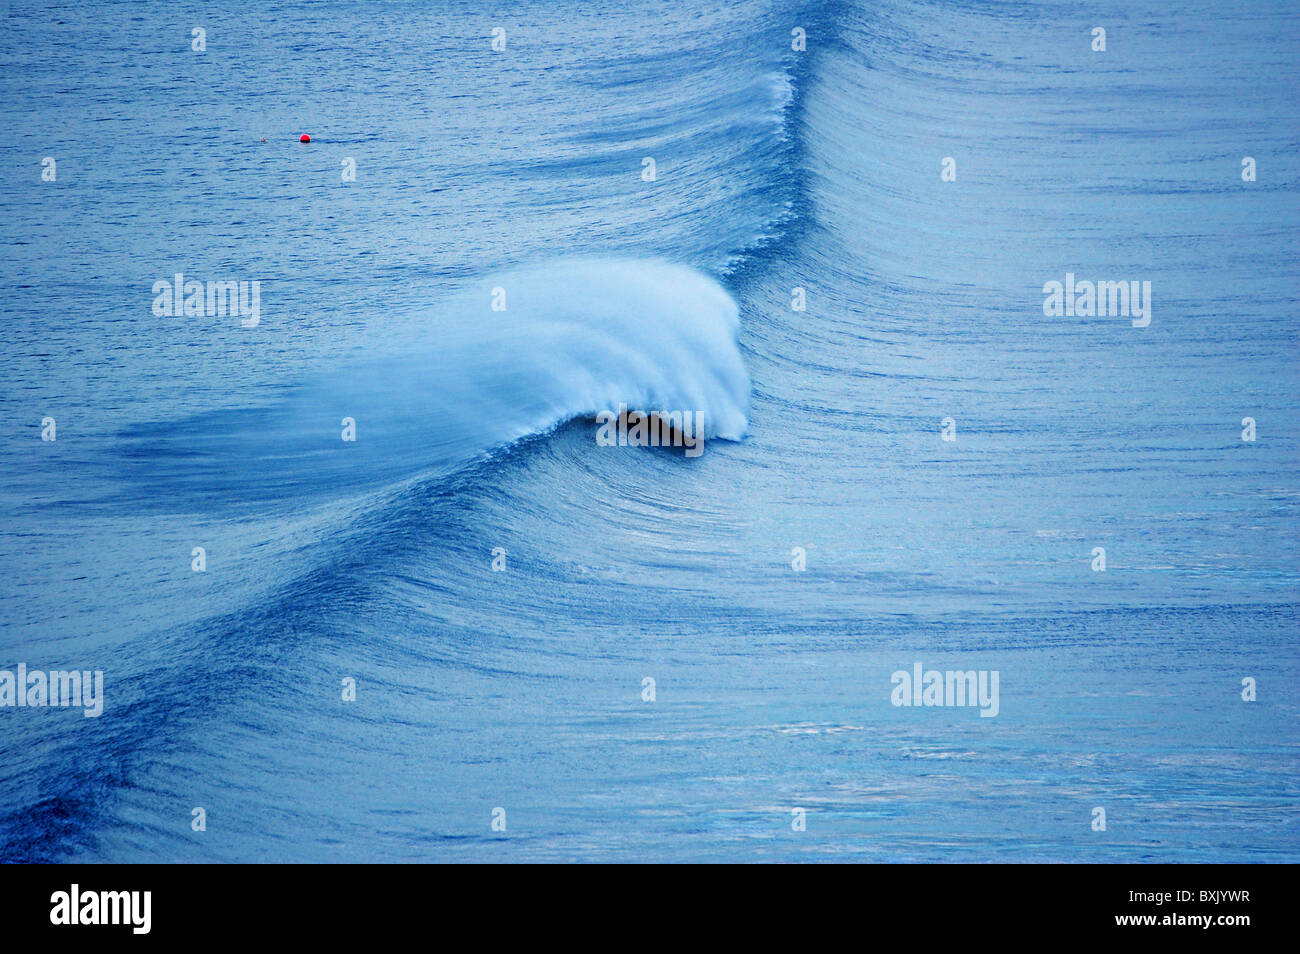 There Are Many Types Of Ocean Waves Waves Differ From